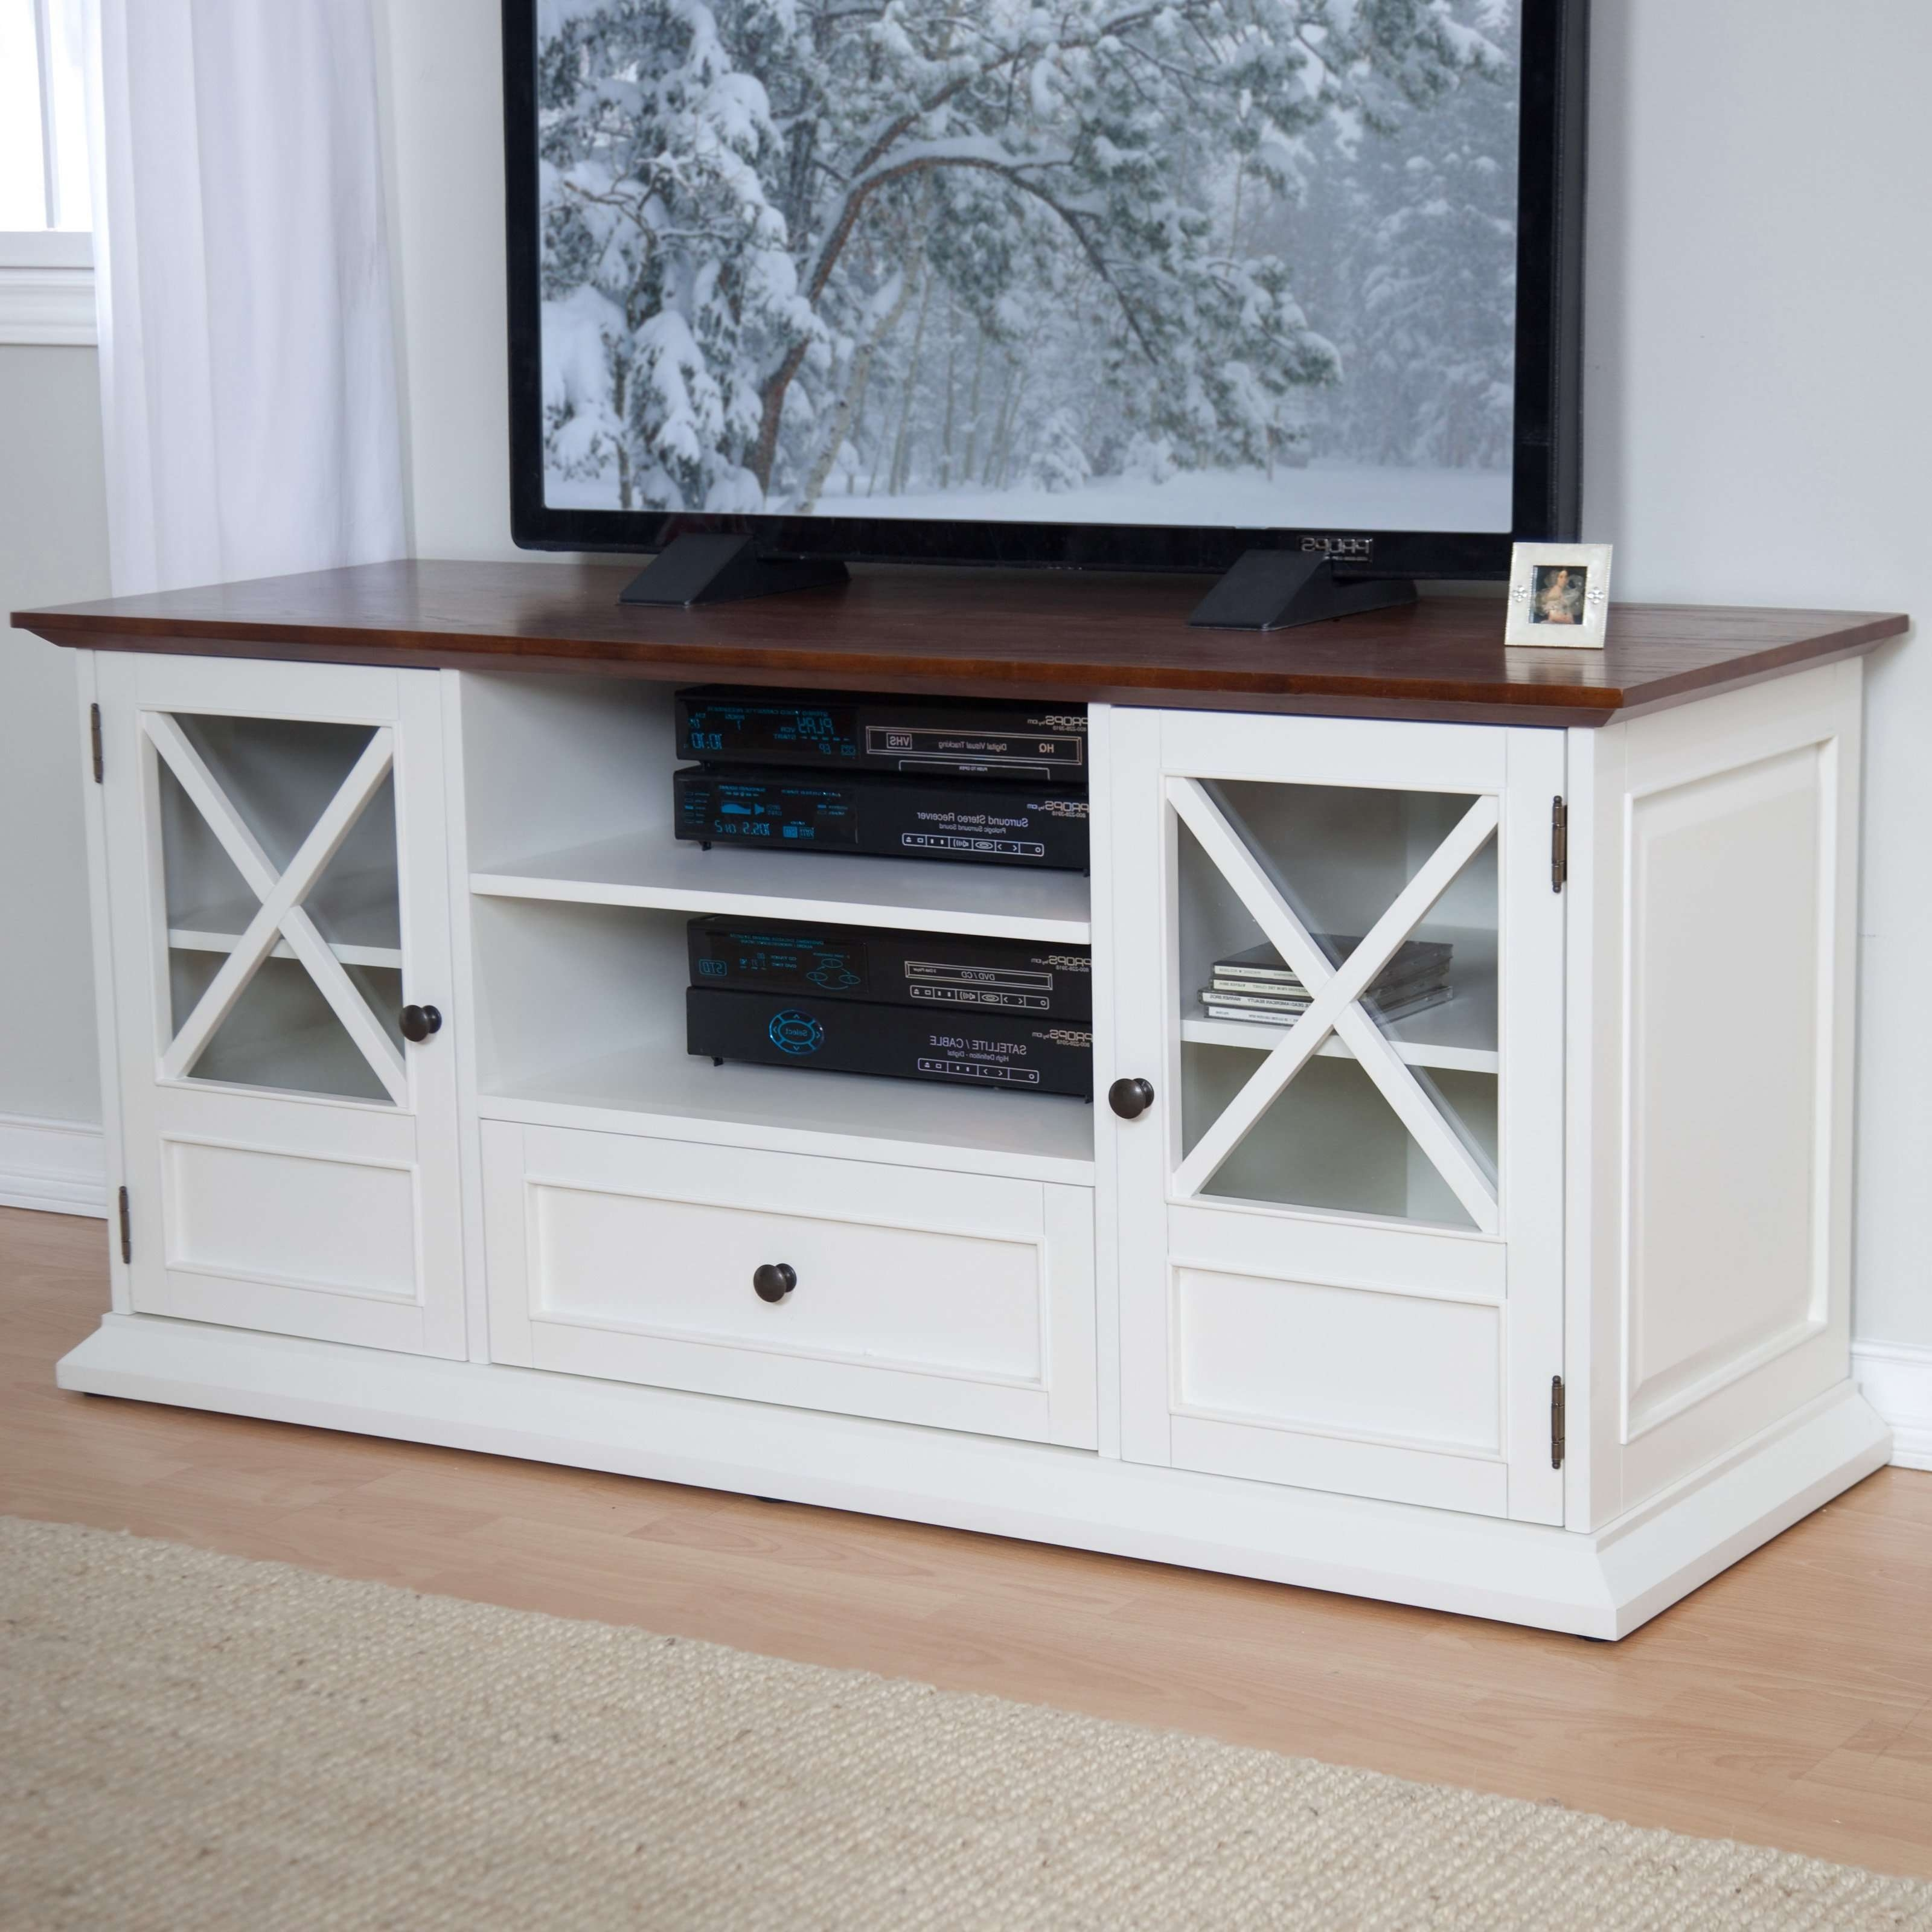 Belham Living Hampton Tv Stand – White/oak | Hayneedle With White And Wood Tv Stands (View 2 of 15)